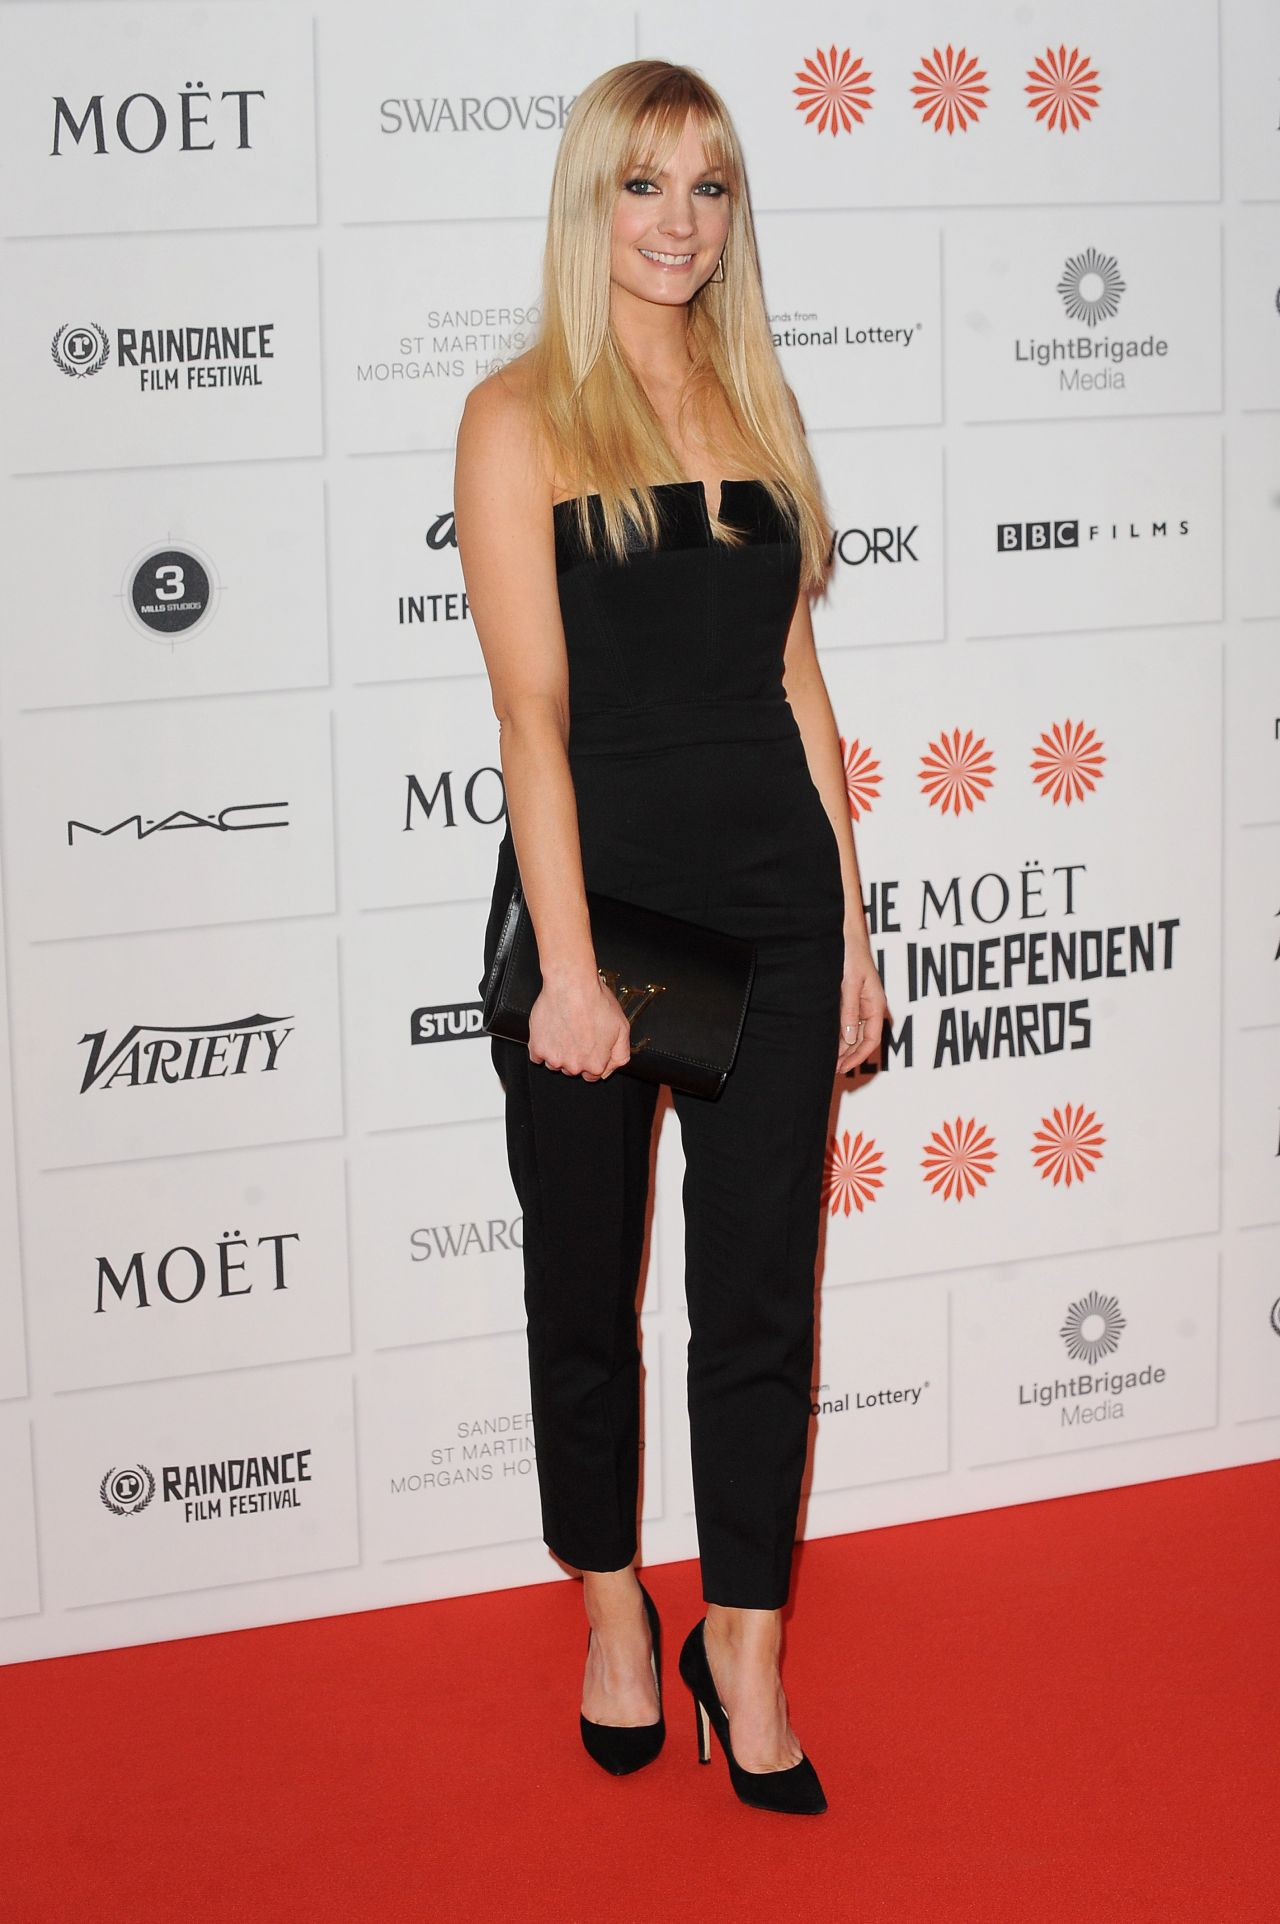 Joanne Froggatt Red Carpet Photos - Moet British Independent Film Awards - December 2013